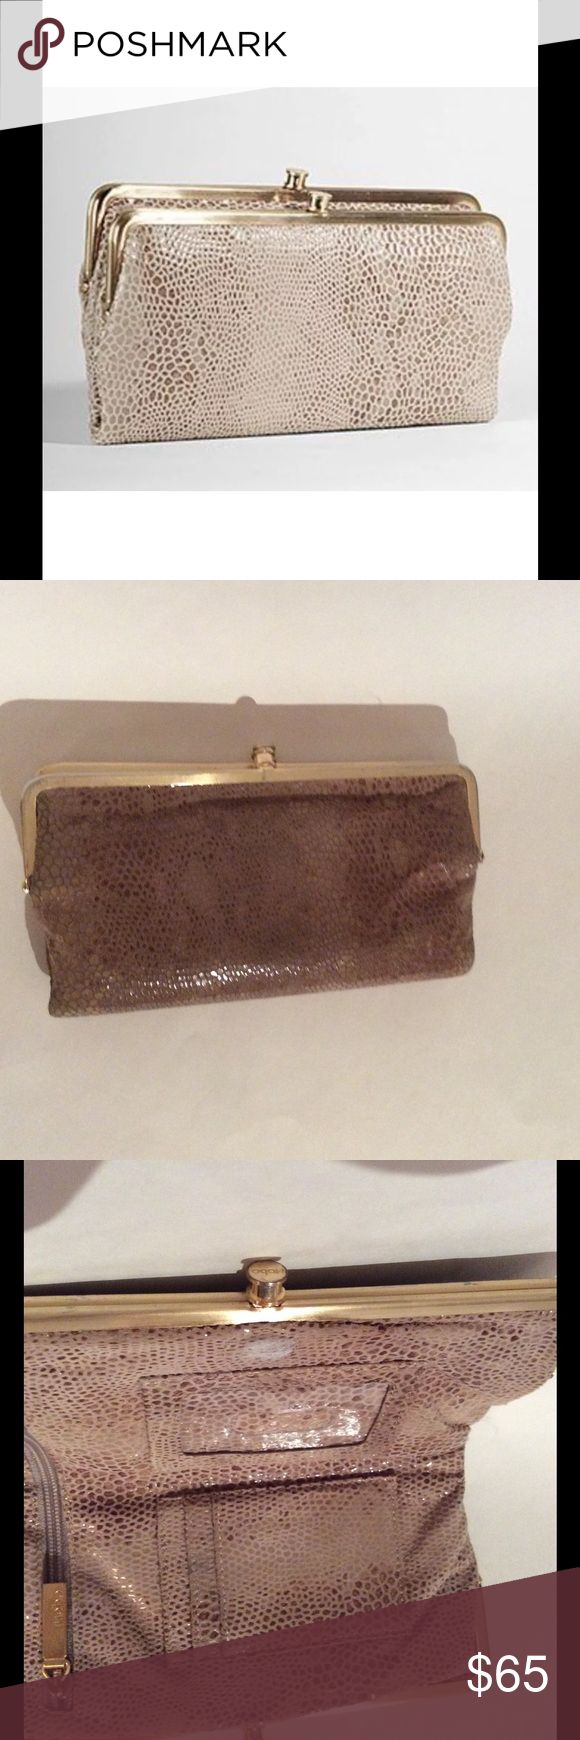 "HOBO Lauren Wallet Clutch Honey Gold Snake Python THE LEGENDARY LAUREN- FUNCTIONAL WALLET BY DAY AND STYLISH CLUTCH BY NIGHT. SHE IS KNOWN FOR HER CARRY-ALL ATTITUDE AND TOTAL COOL FACTOR.  Ext Pocket Type: None Int Pocket Type: Zipper Pocket Closure: Frame Closure Bottom Width: 8.5""W Size: 8.5""W X 5""H X 1""D Strap Drop: No Strap  Gently loved. Wear on gold hardware and snakeskin, as pictured. HOBO Bags Wallets"